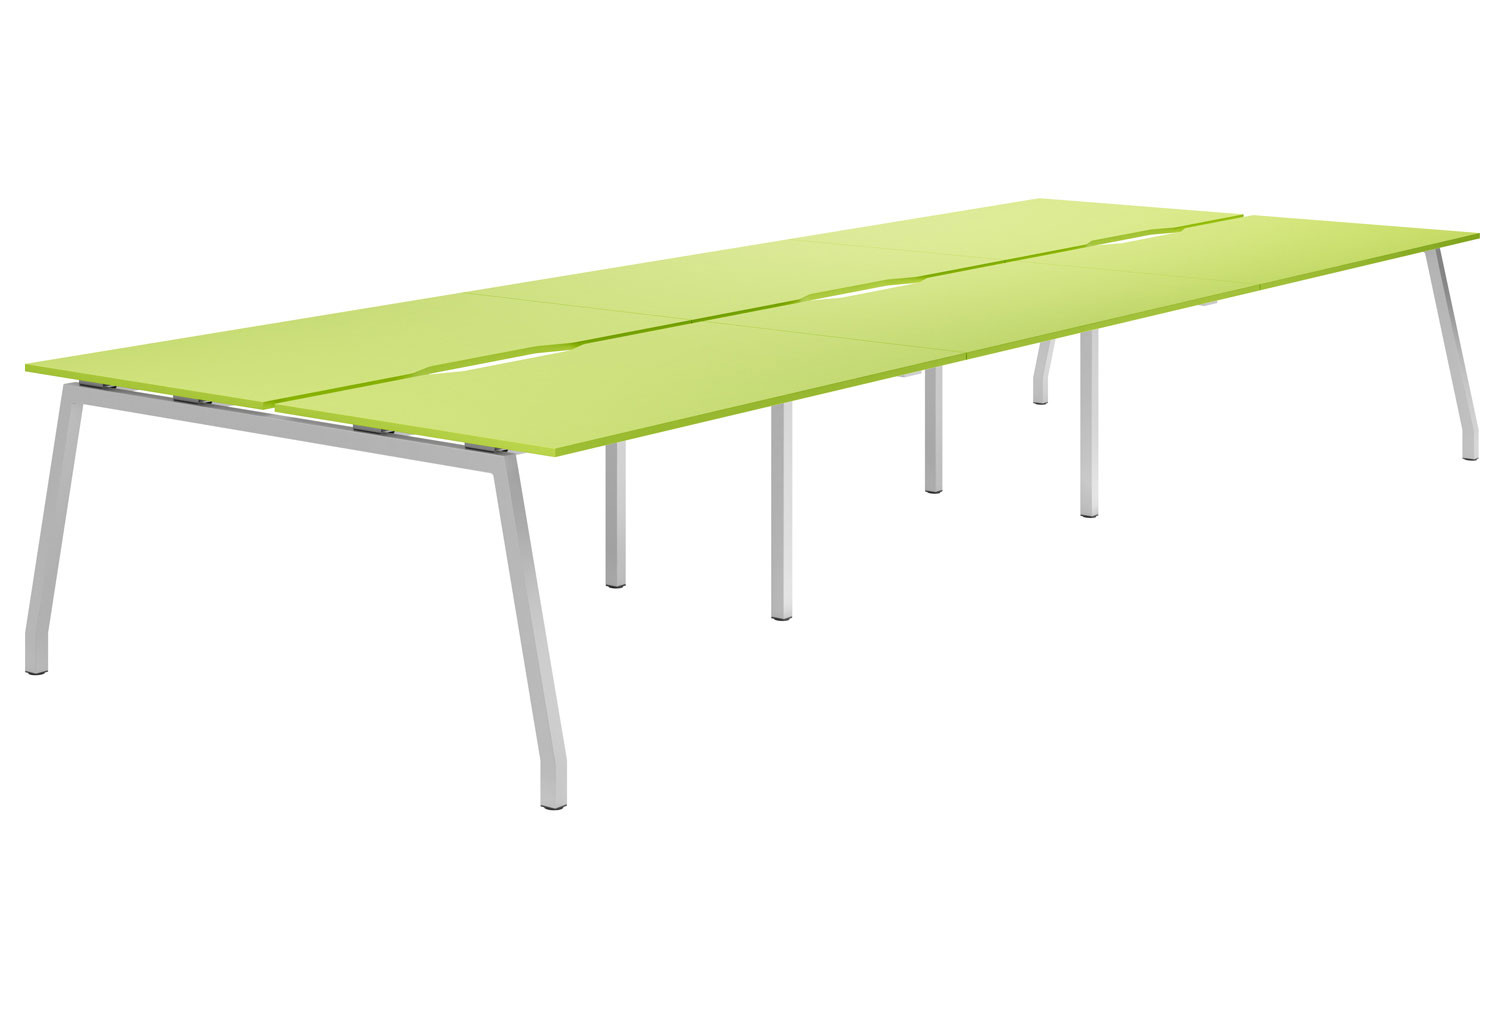 Campos A-Frame 6 Person Back To Back Bench Desk (Green)